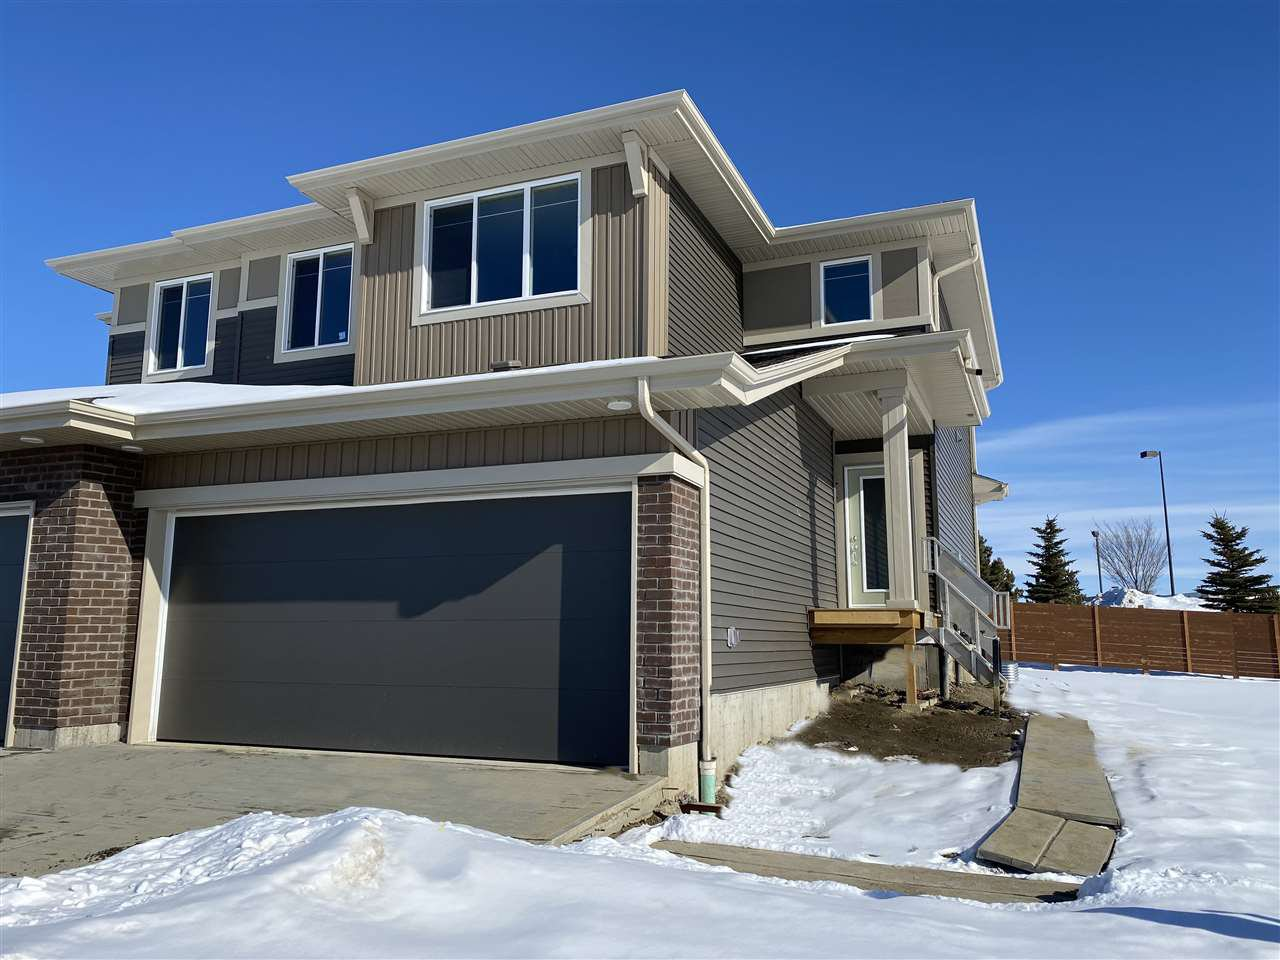 Main Photo: 74 JUNEAU Way NW: St. Albert House Half Duplex for sale : MLS®# E4190635